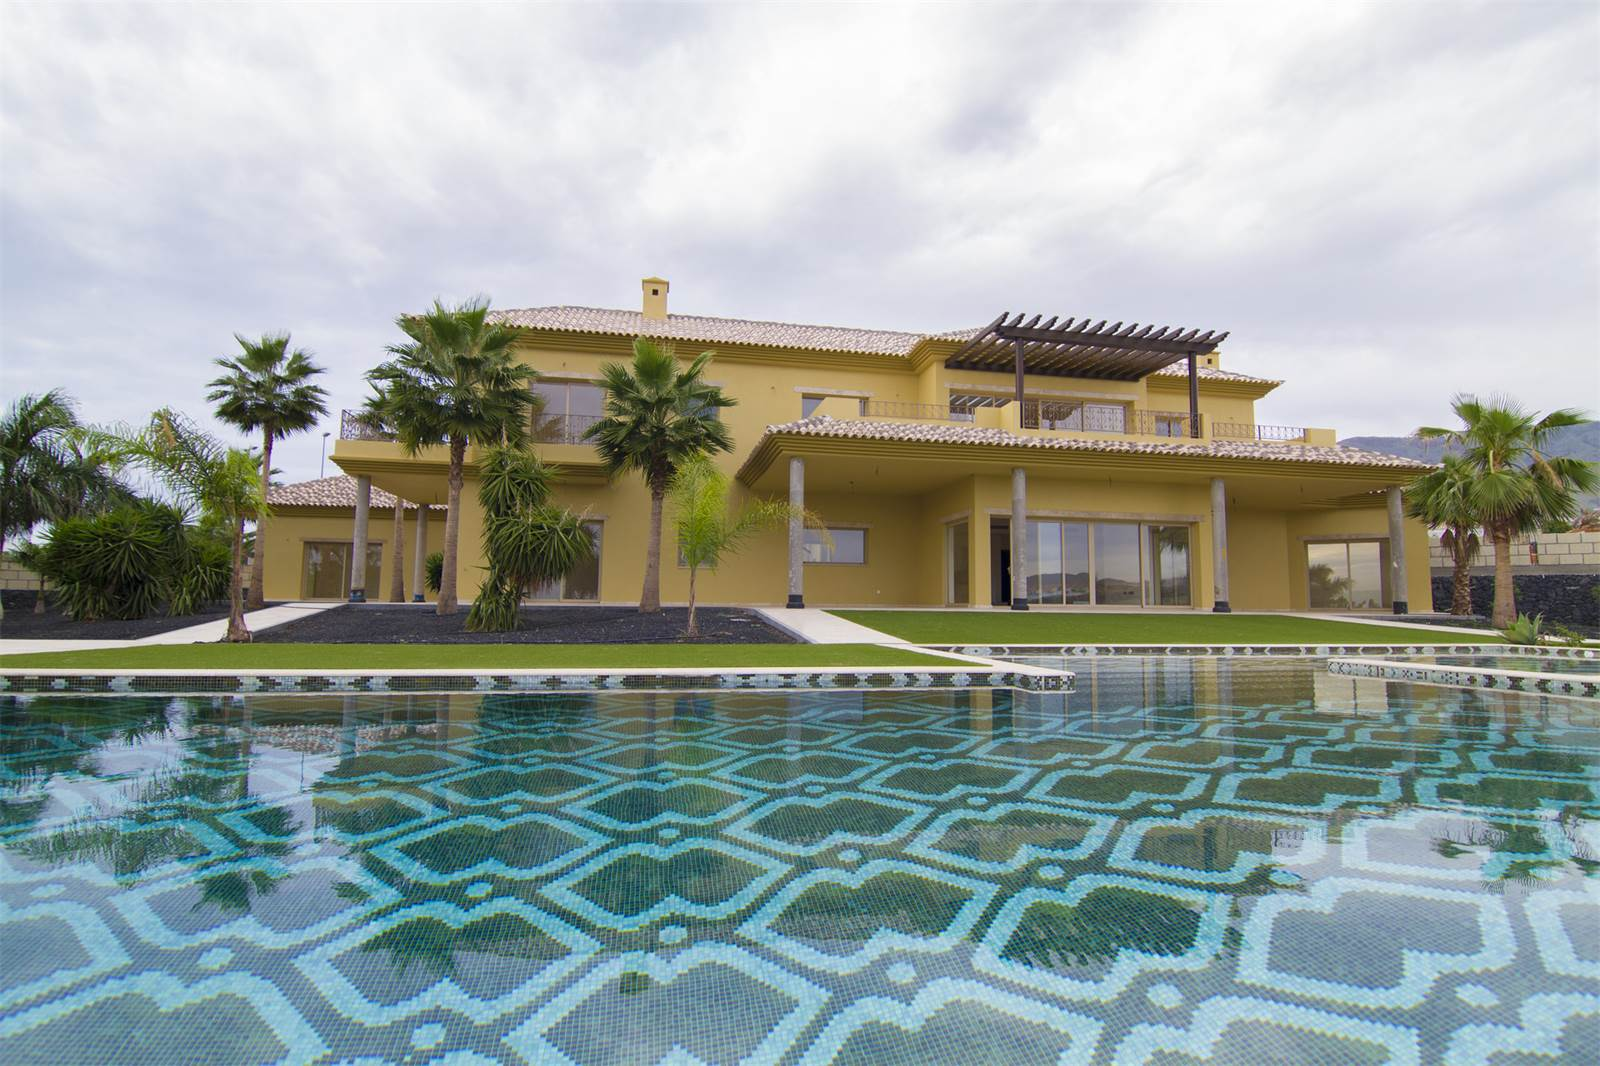 7 Bedrooms, 7,373 sq. ft.Costa Adeje Golf course property with beautiful gardens